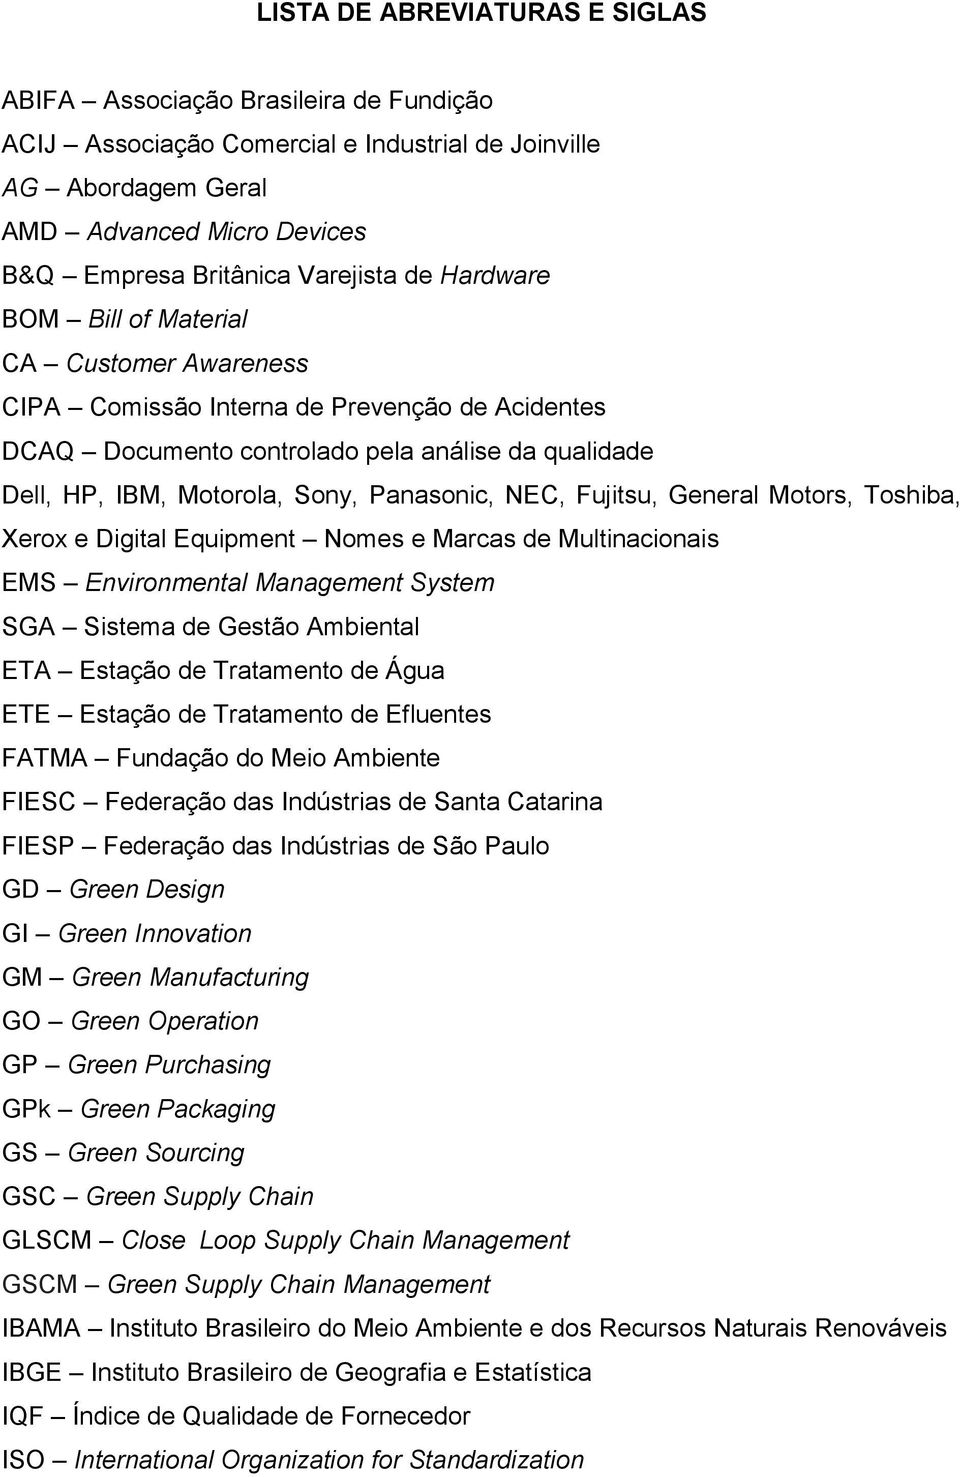 Panasonic, NEC, Fujitsu, General Motors, Toshiba, Xerox e Digital Equipment Nomes e Marcas de Multinacionais EMS Environmental Management System SGA Sistema de Gestão Ambiental ETA Estação de